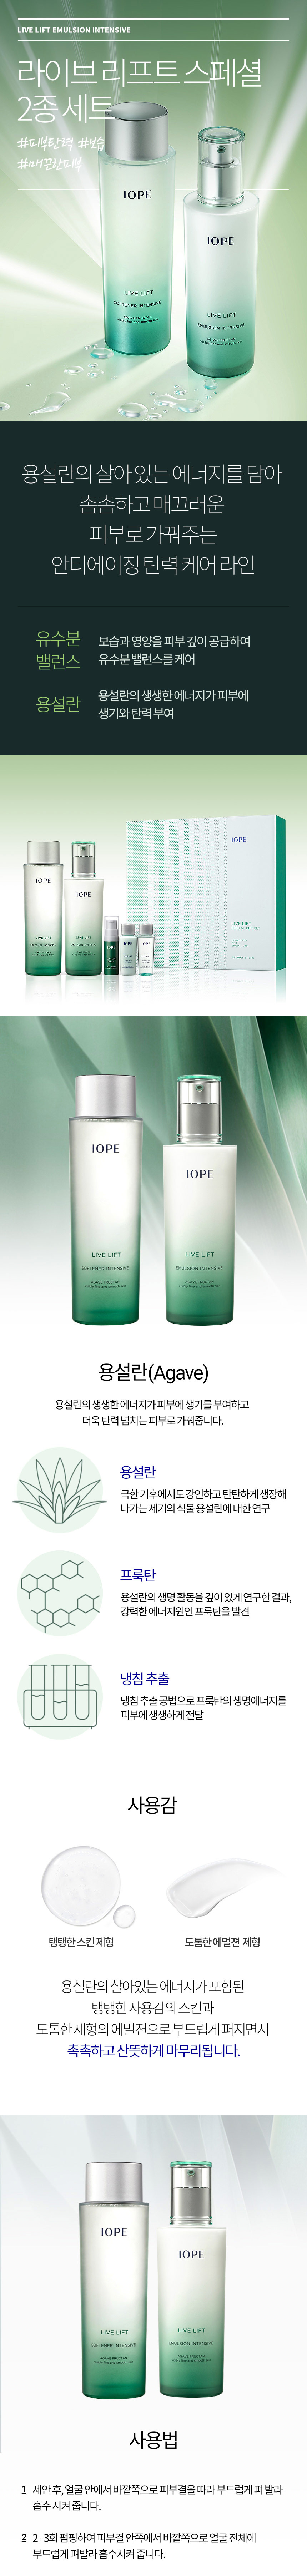 IOPE Live Lift Special Gift Set Malaysia Indonesia Singapore